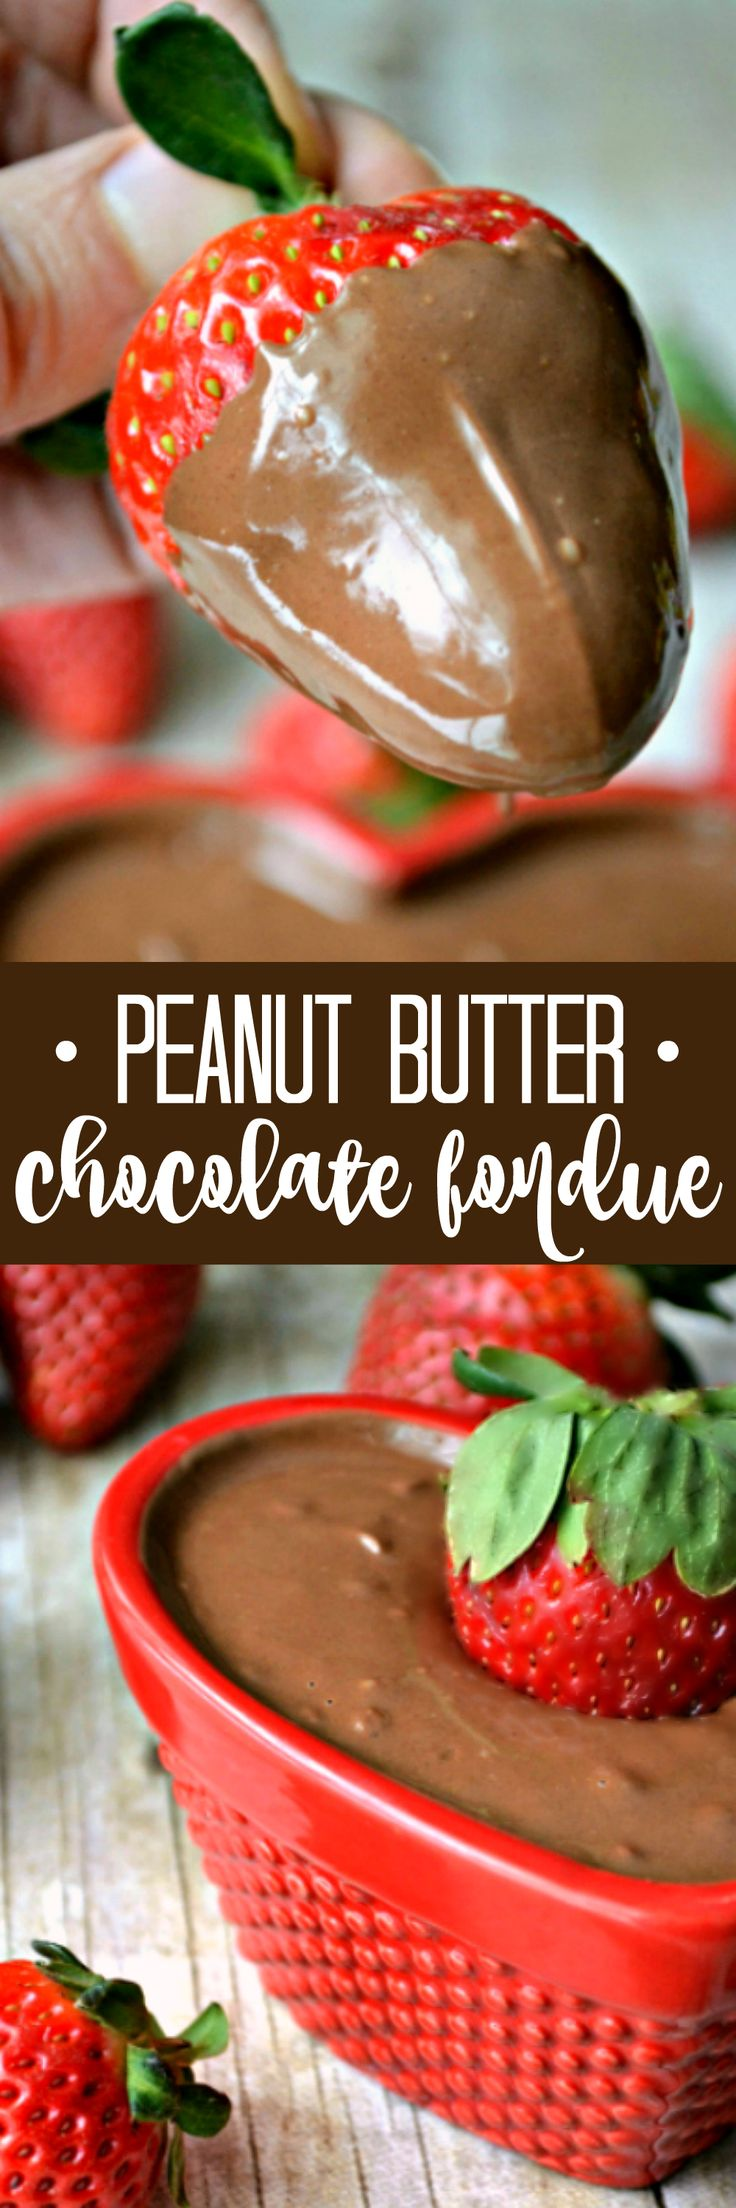 Reach, creamy Peanut Butter Chocolate Fondue...made with just 3 simple ingredients and ready in no time at all!